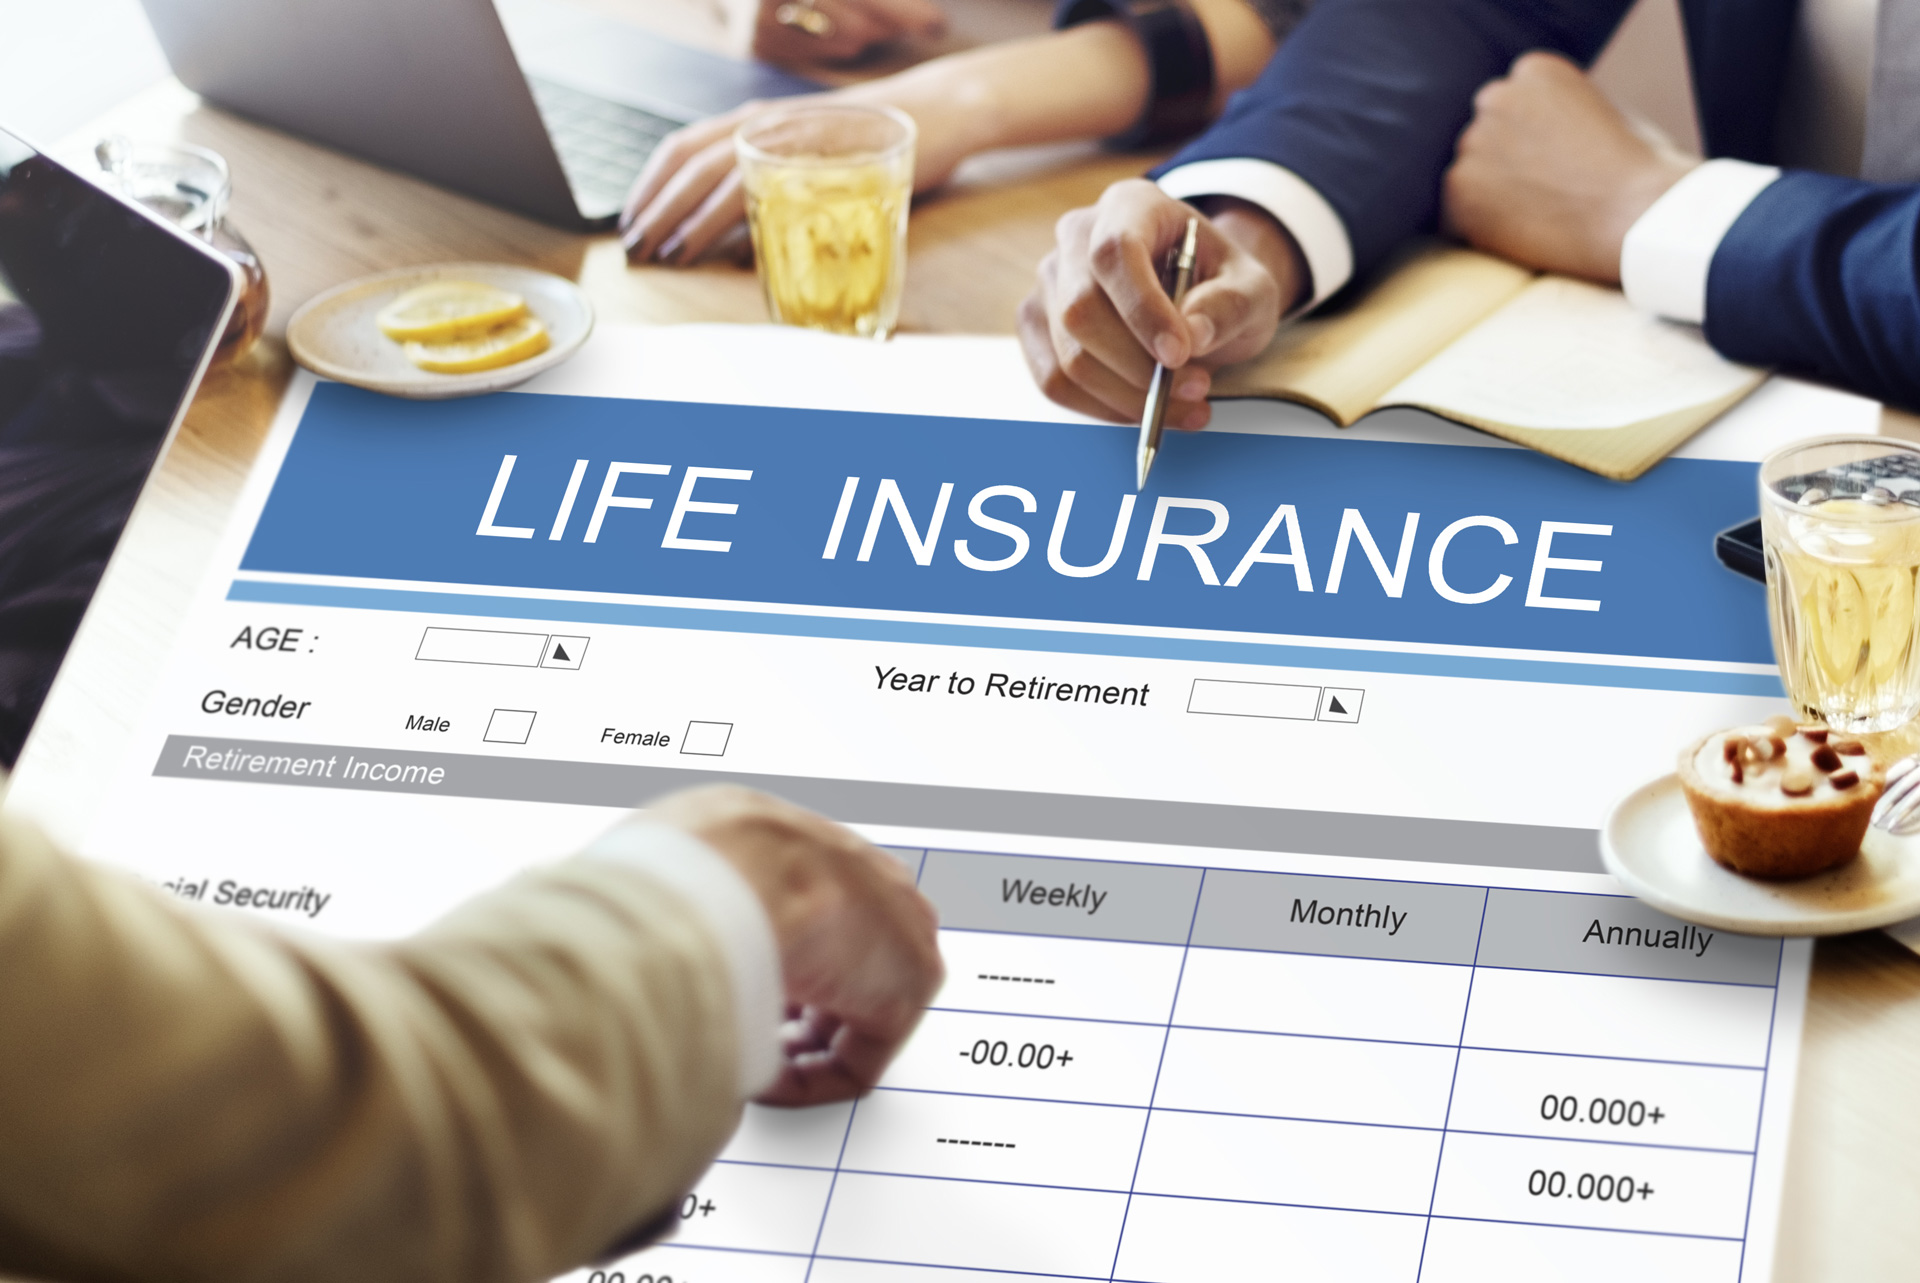 Benefits Of Adding Insurance Products To Client Portfolios ...